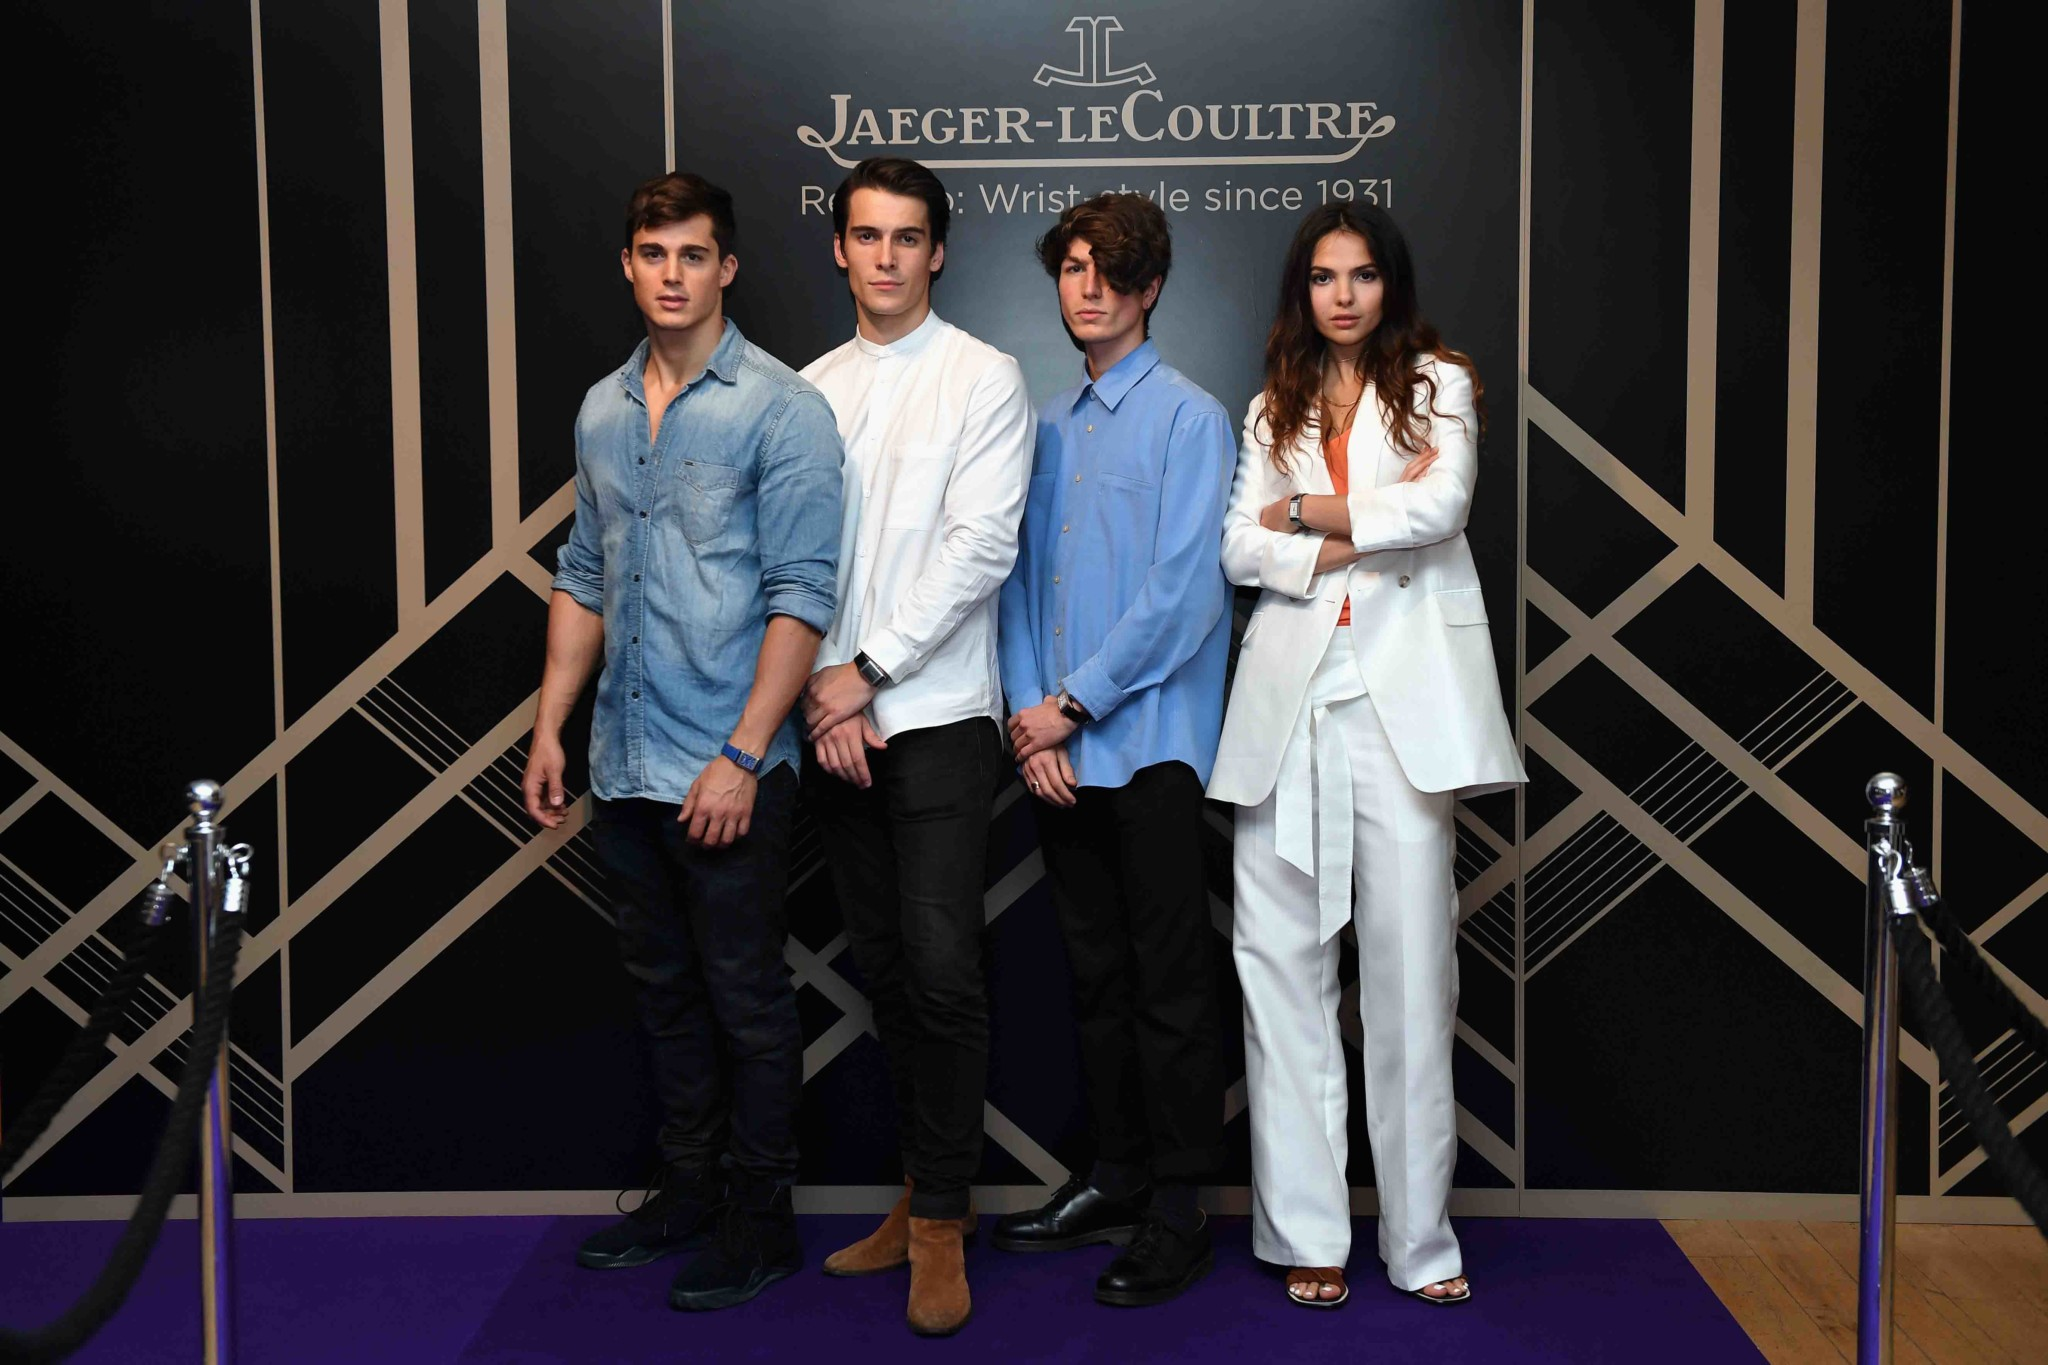 """LONDON, ENGLAND - MAY 31: (L-R) Pietro Boselli, Harry Rowley, Zaki Maoui and Doina Ciobanu attend Jaeger-LeCoultre & Christie's """"Roaring 20's, Reverso 30's"""" Party at Christie's South Kensington on May 31, 2017 in London, England. (Photo by Chris J Ratcliffe/Getty Images for Jaeger-LeCoultre) *** Local Caption *** Pietro Boselli; Harry Rowley; Zaki Maoui; Doina Ciobanu"""